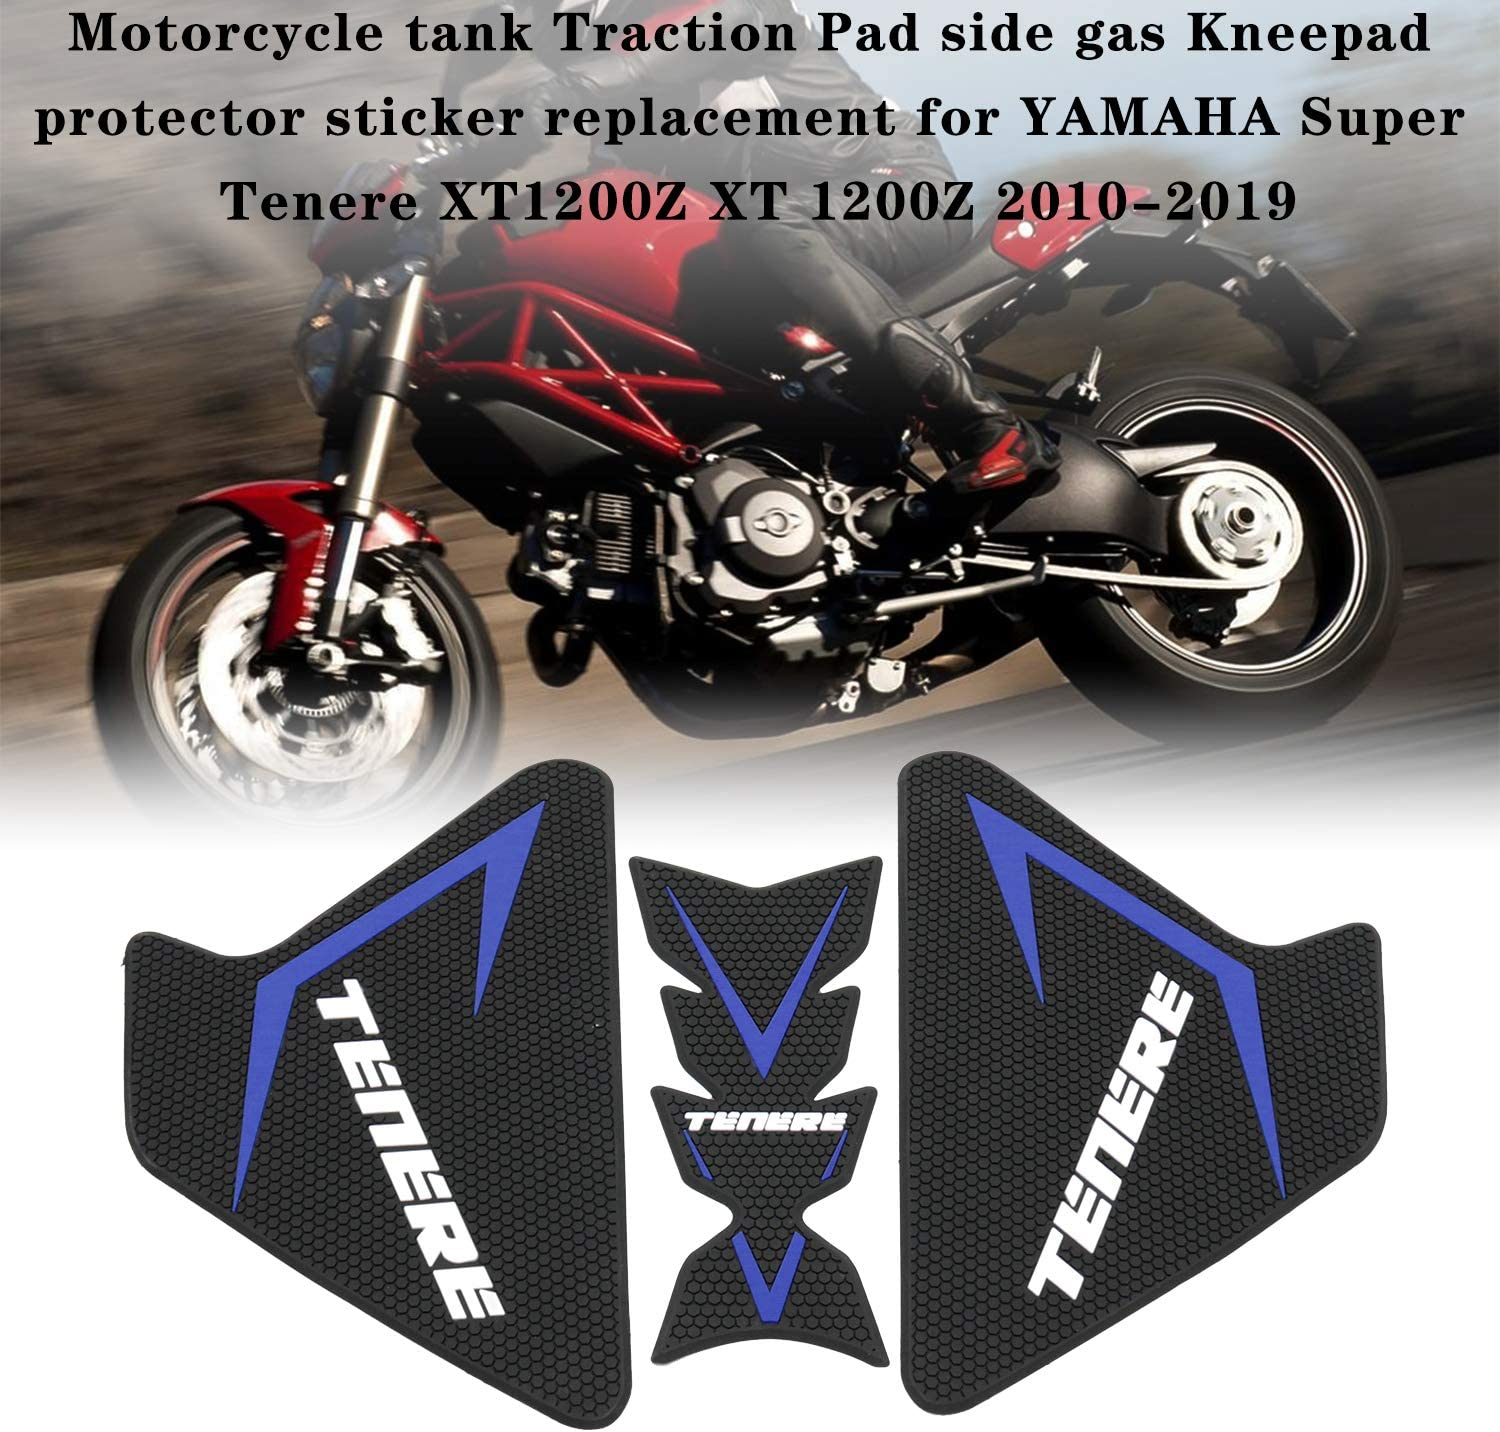 Motorcycle tank Traction Pad side gas Kneepad protector sticker replacement for YAMAHA Super Tenere XT1200Z XT 1200Z 2010-2019 Walmeck